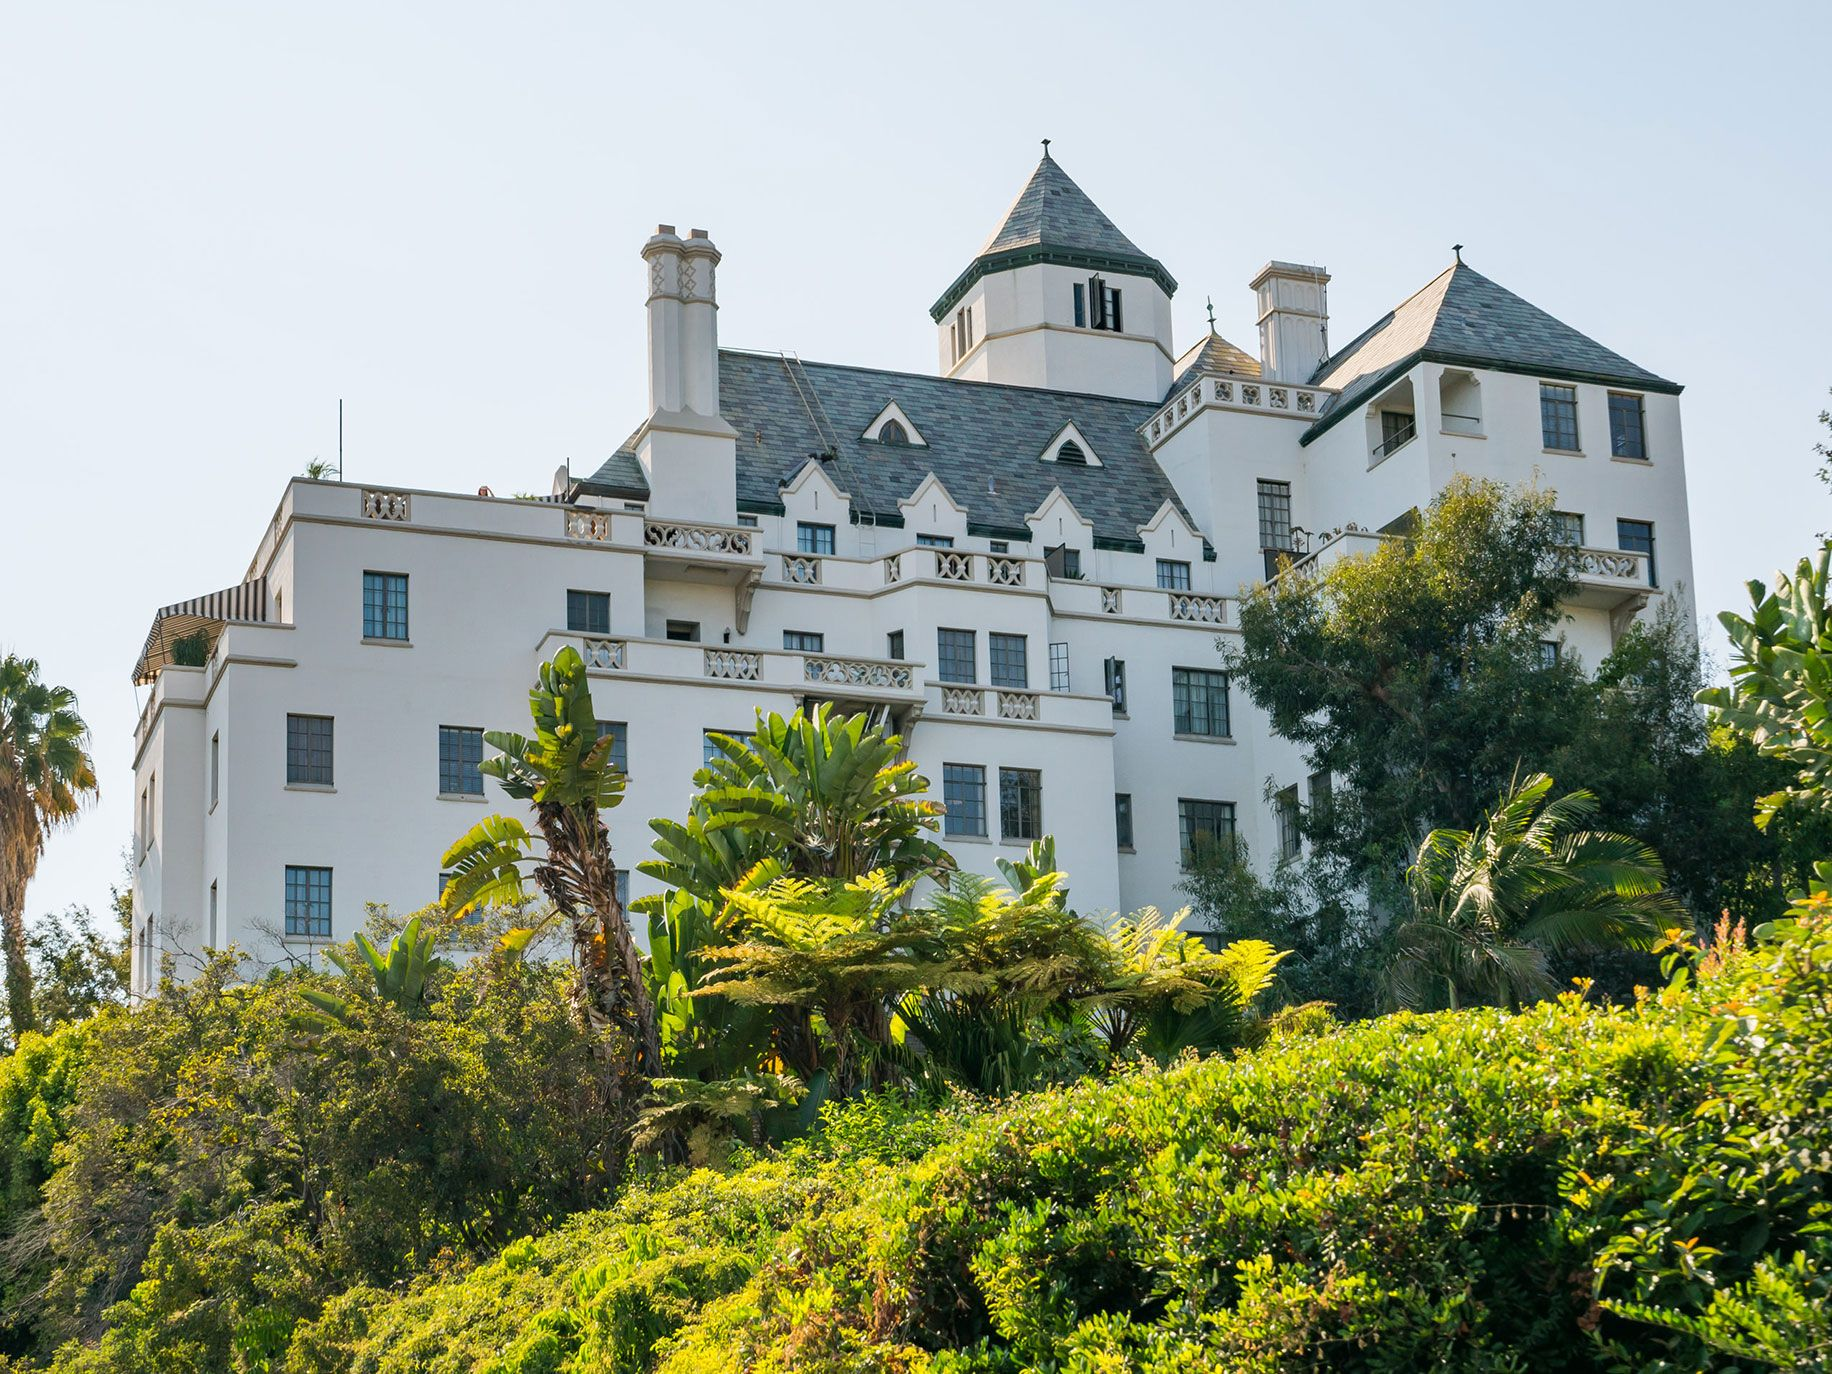 The Chateau Marmont Hotel is perched on a hill looking down over Sunset Boulevard.